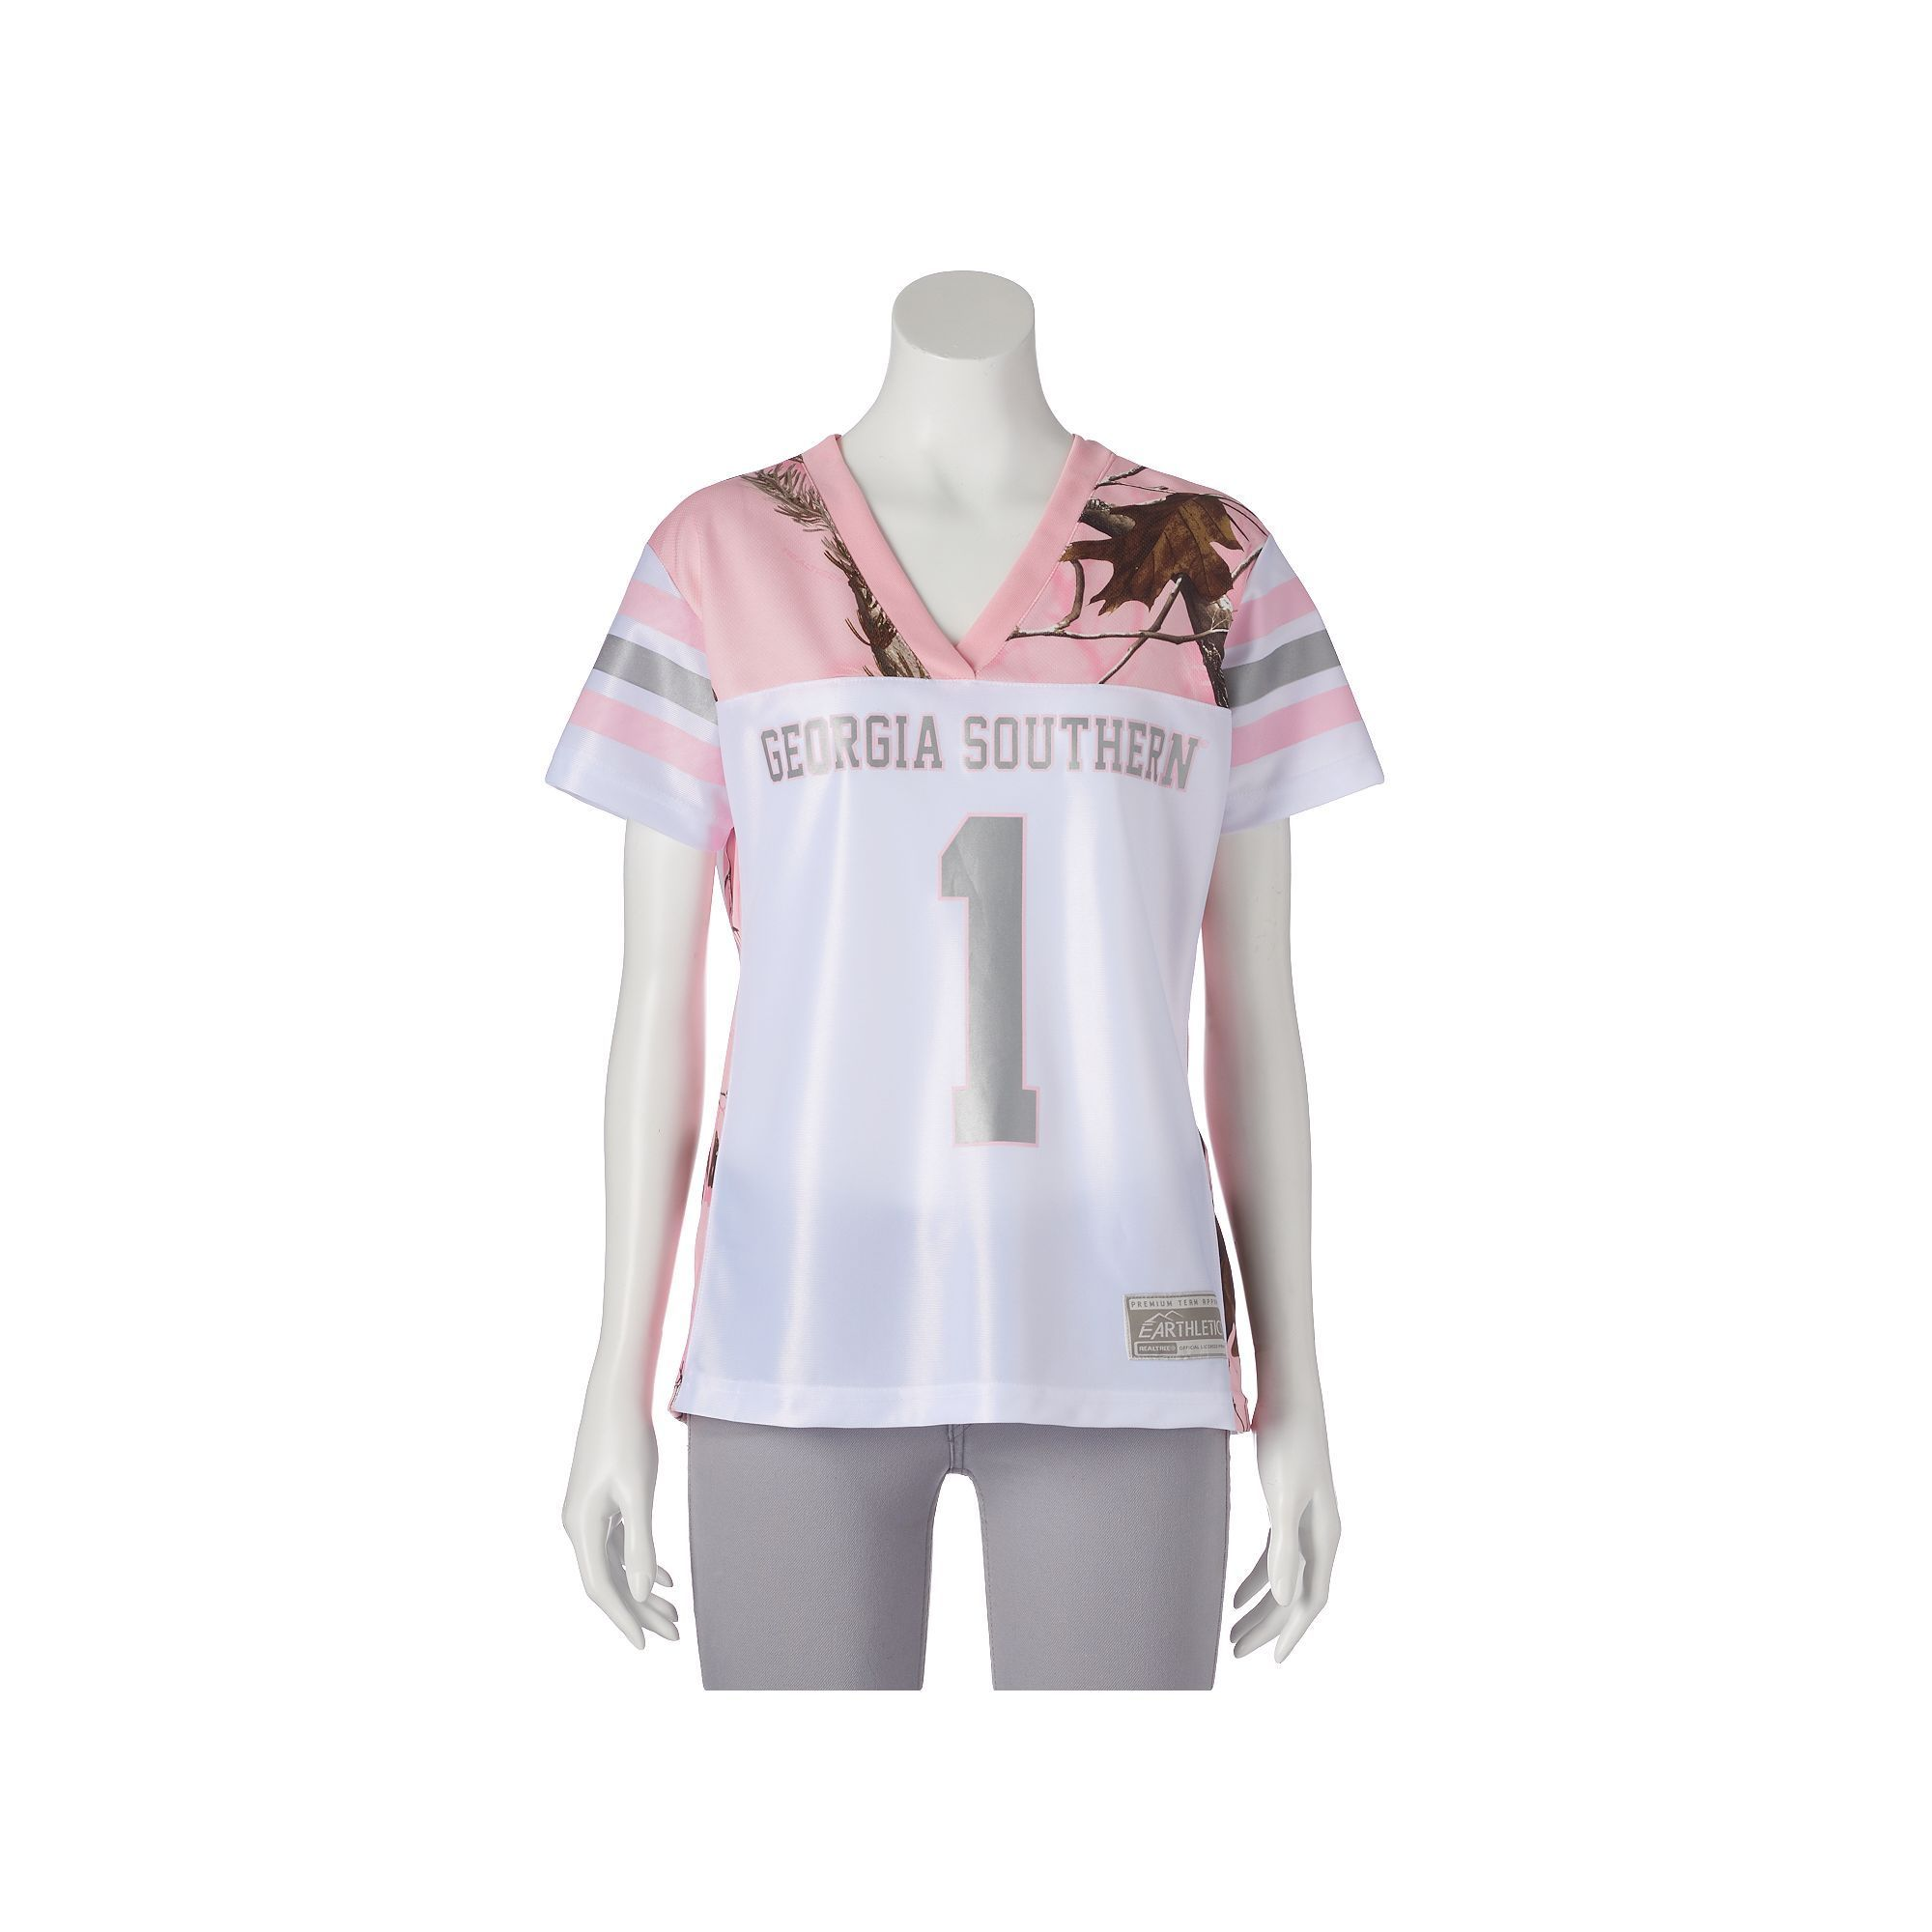 c746d2f9b9a Women's Realtree Georgia Southern Eagles Game Day Jersey, Size: Medium,  White